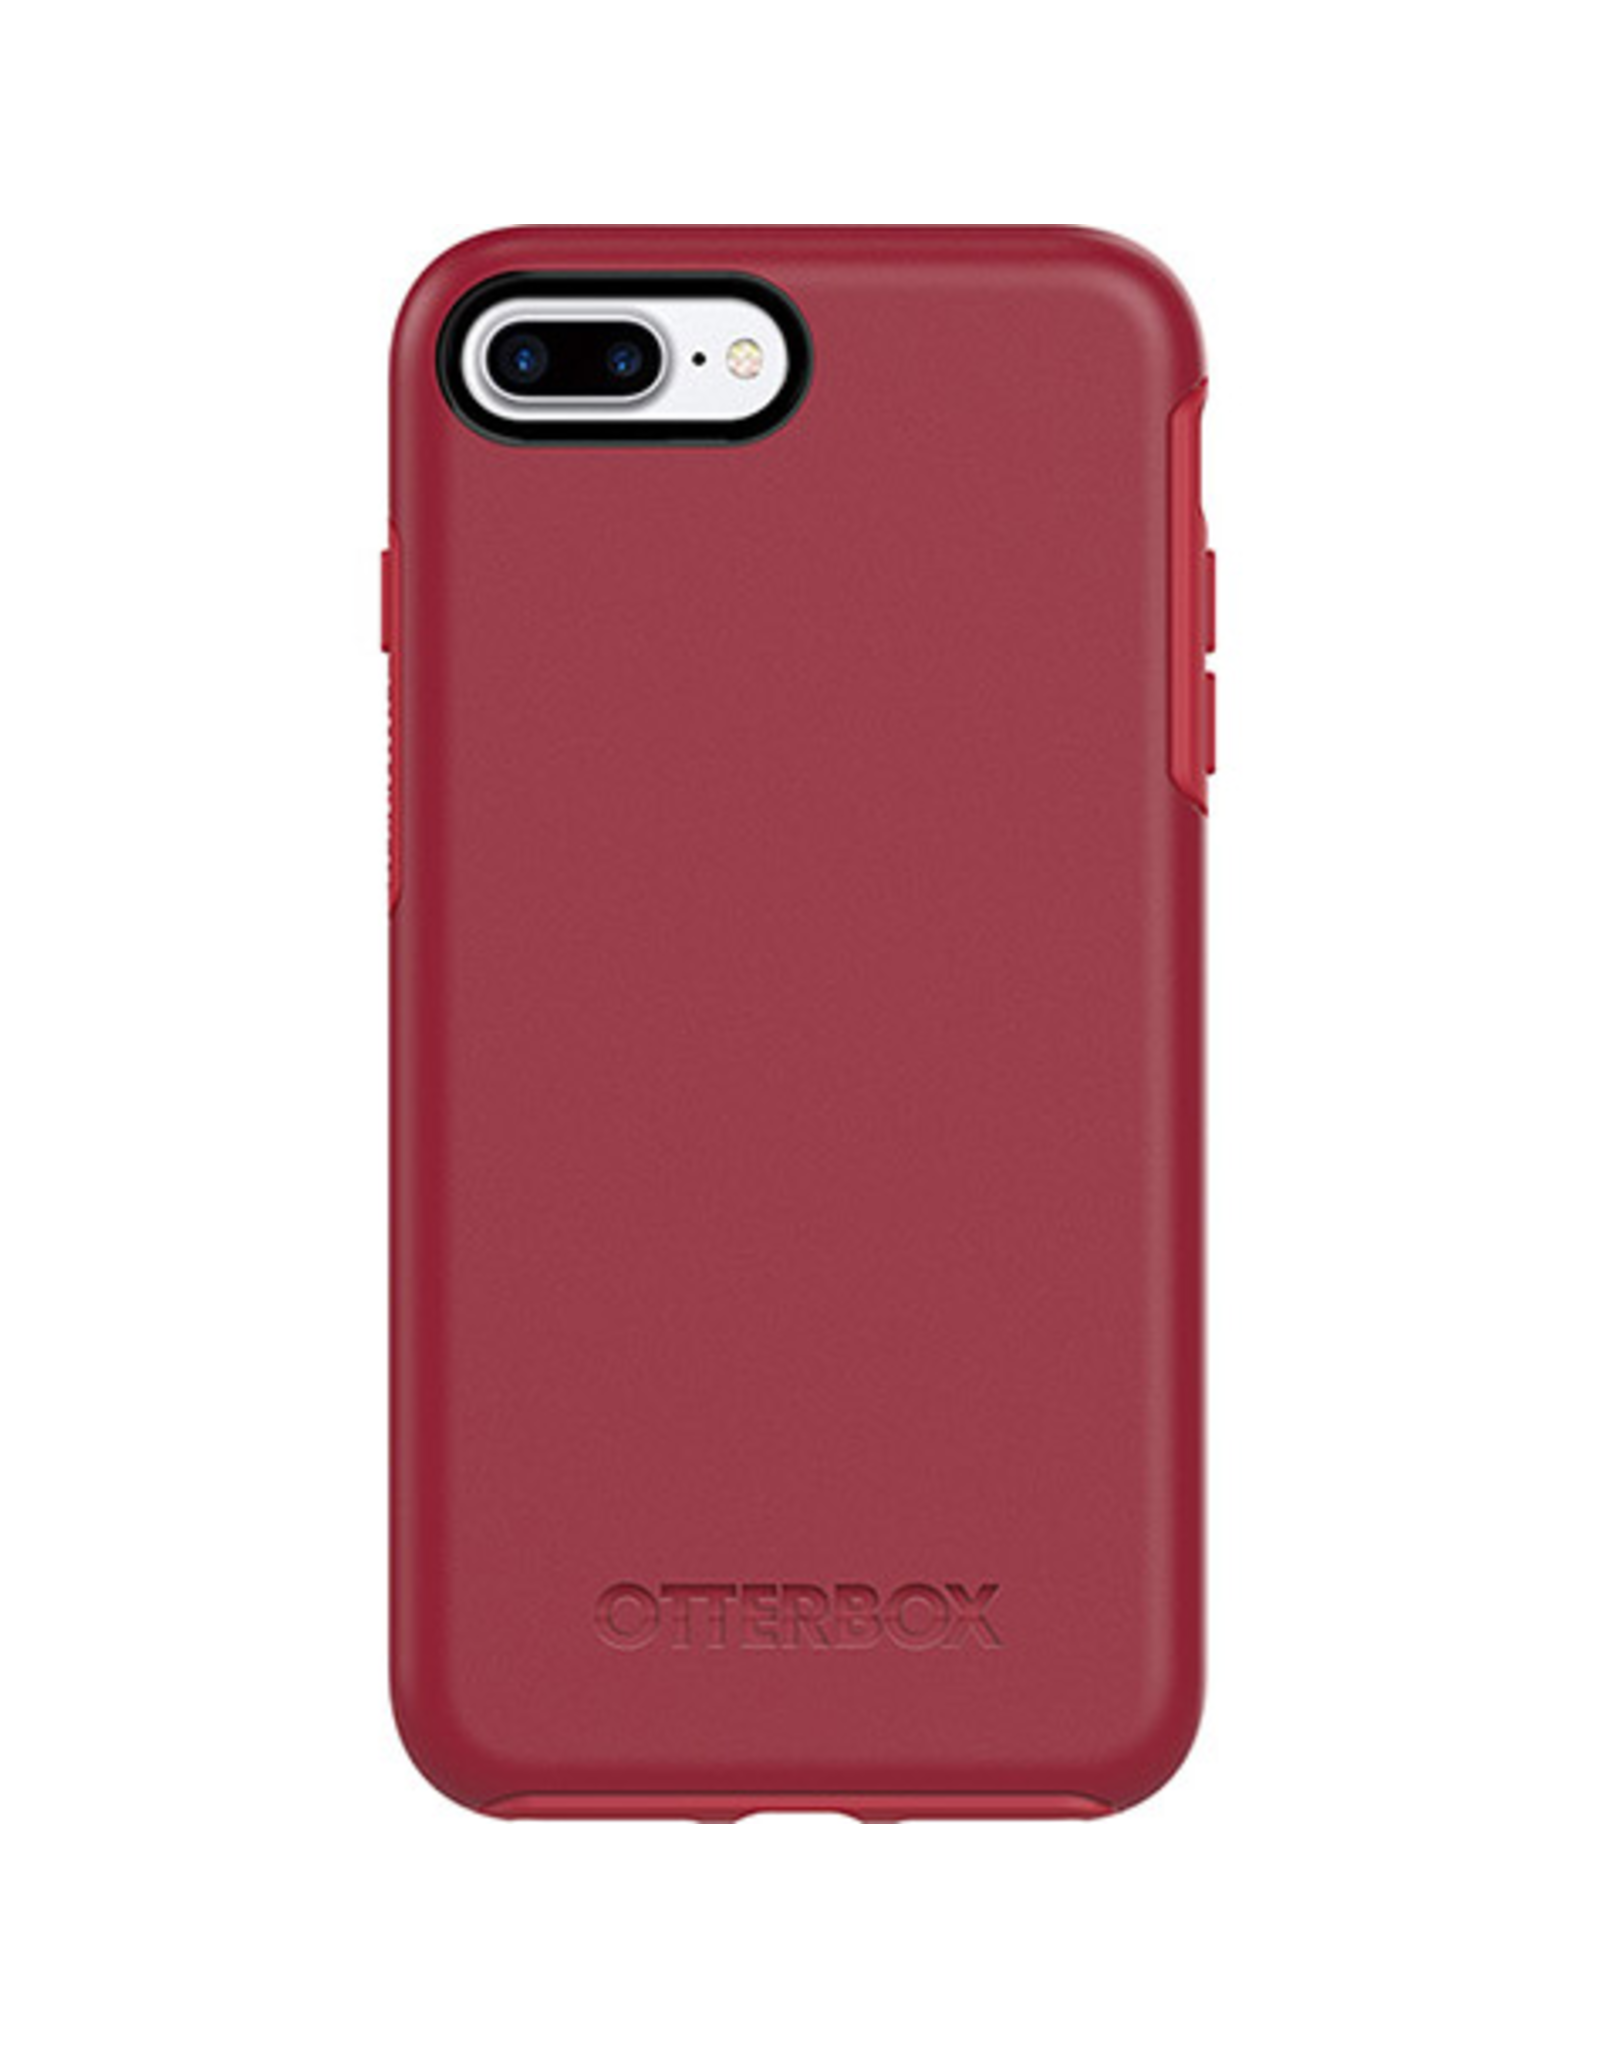 Otterbox OtterBox Symmetry Case suits iPhone 7 Plus/8 plus - Flame Red/Race Red